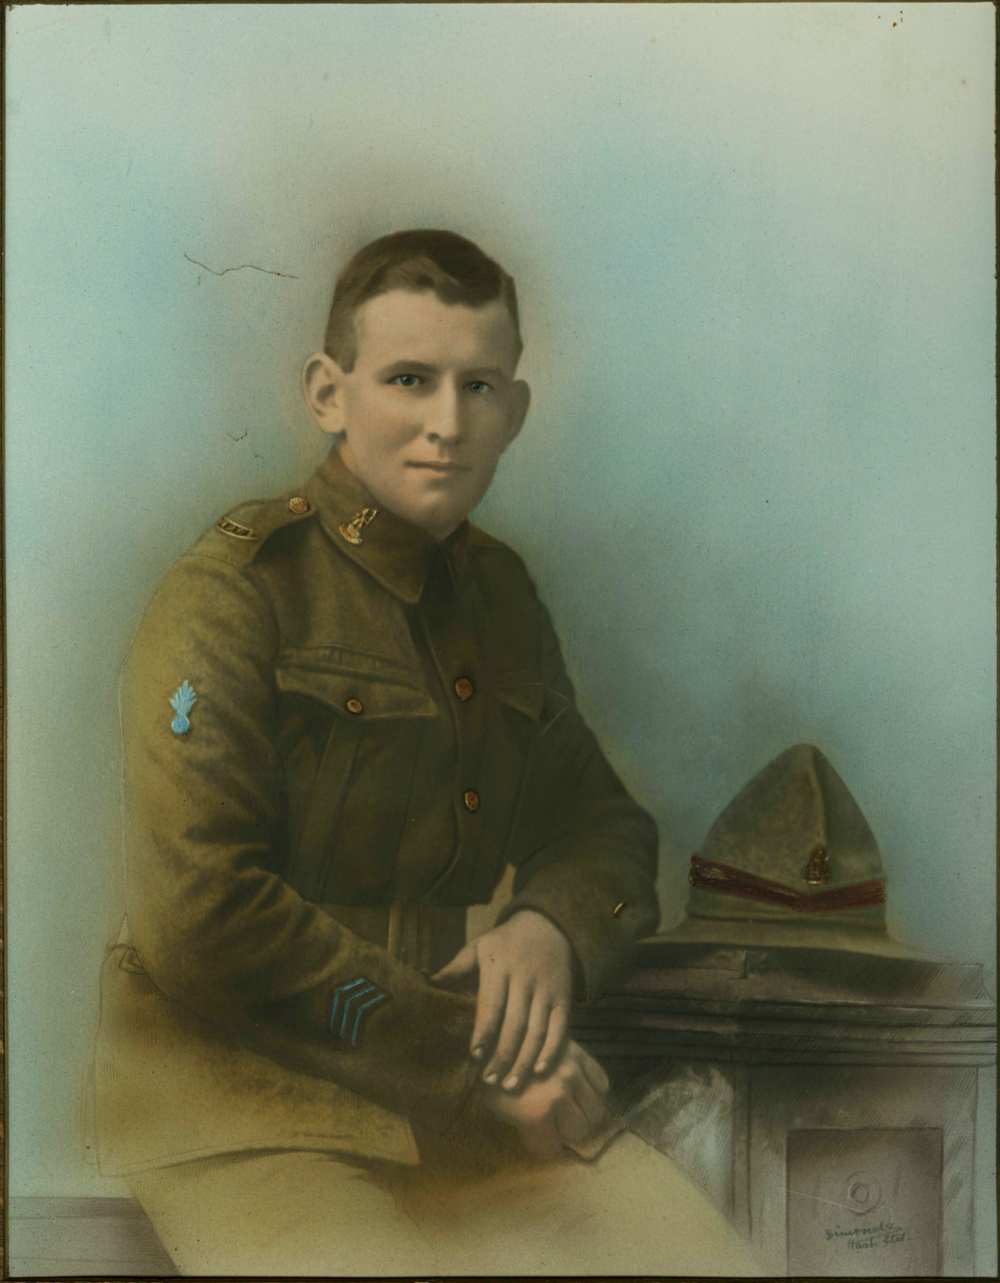 John Leo O'Keefe - this is one of several large colour portraits of John Leo O'Keefe.